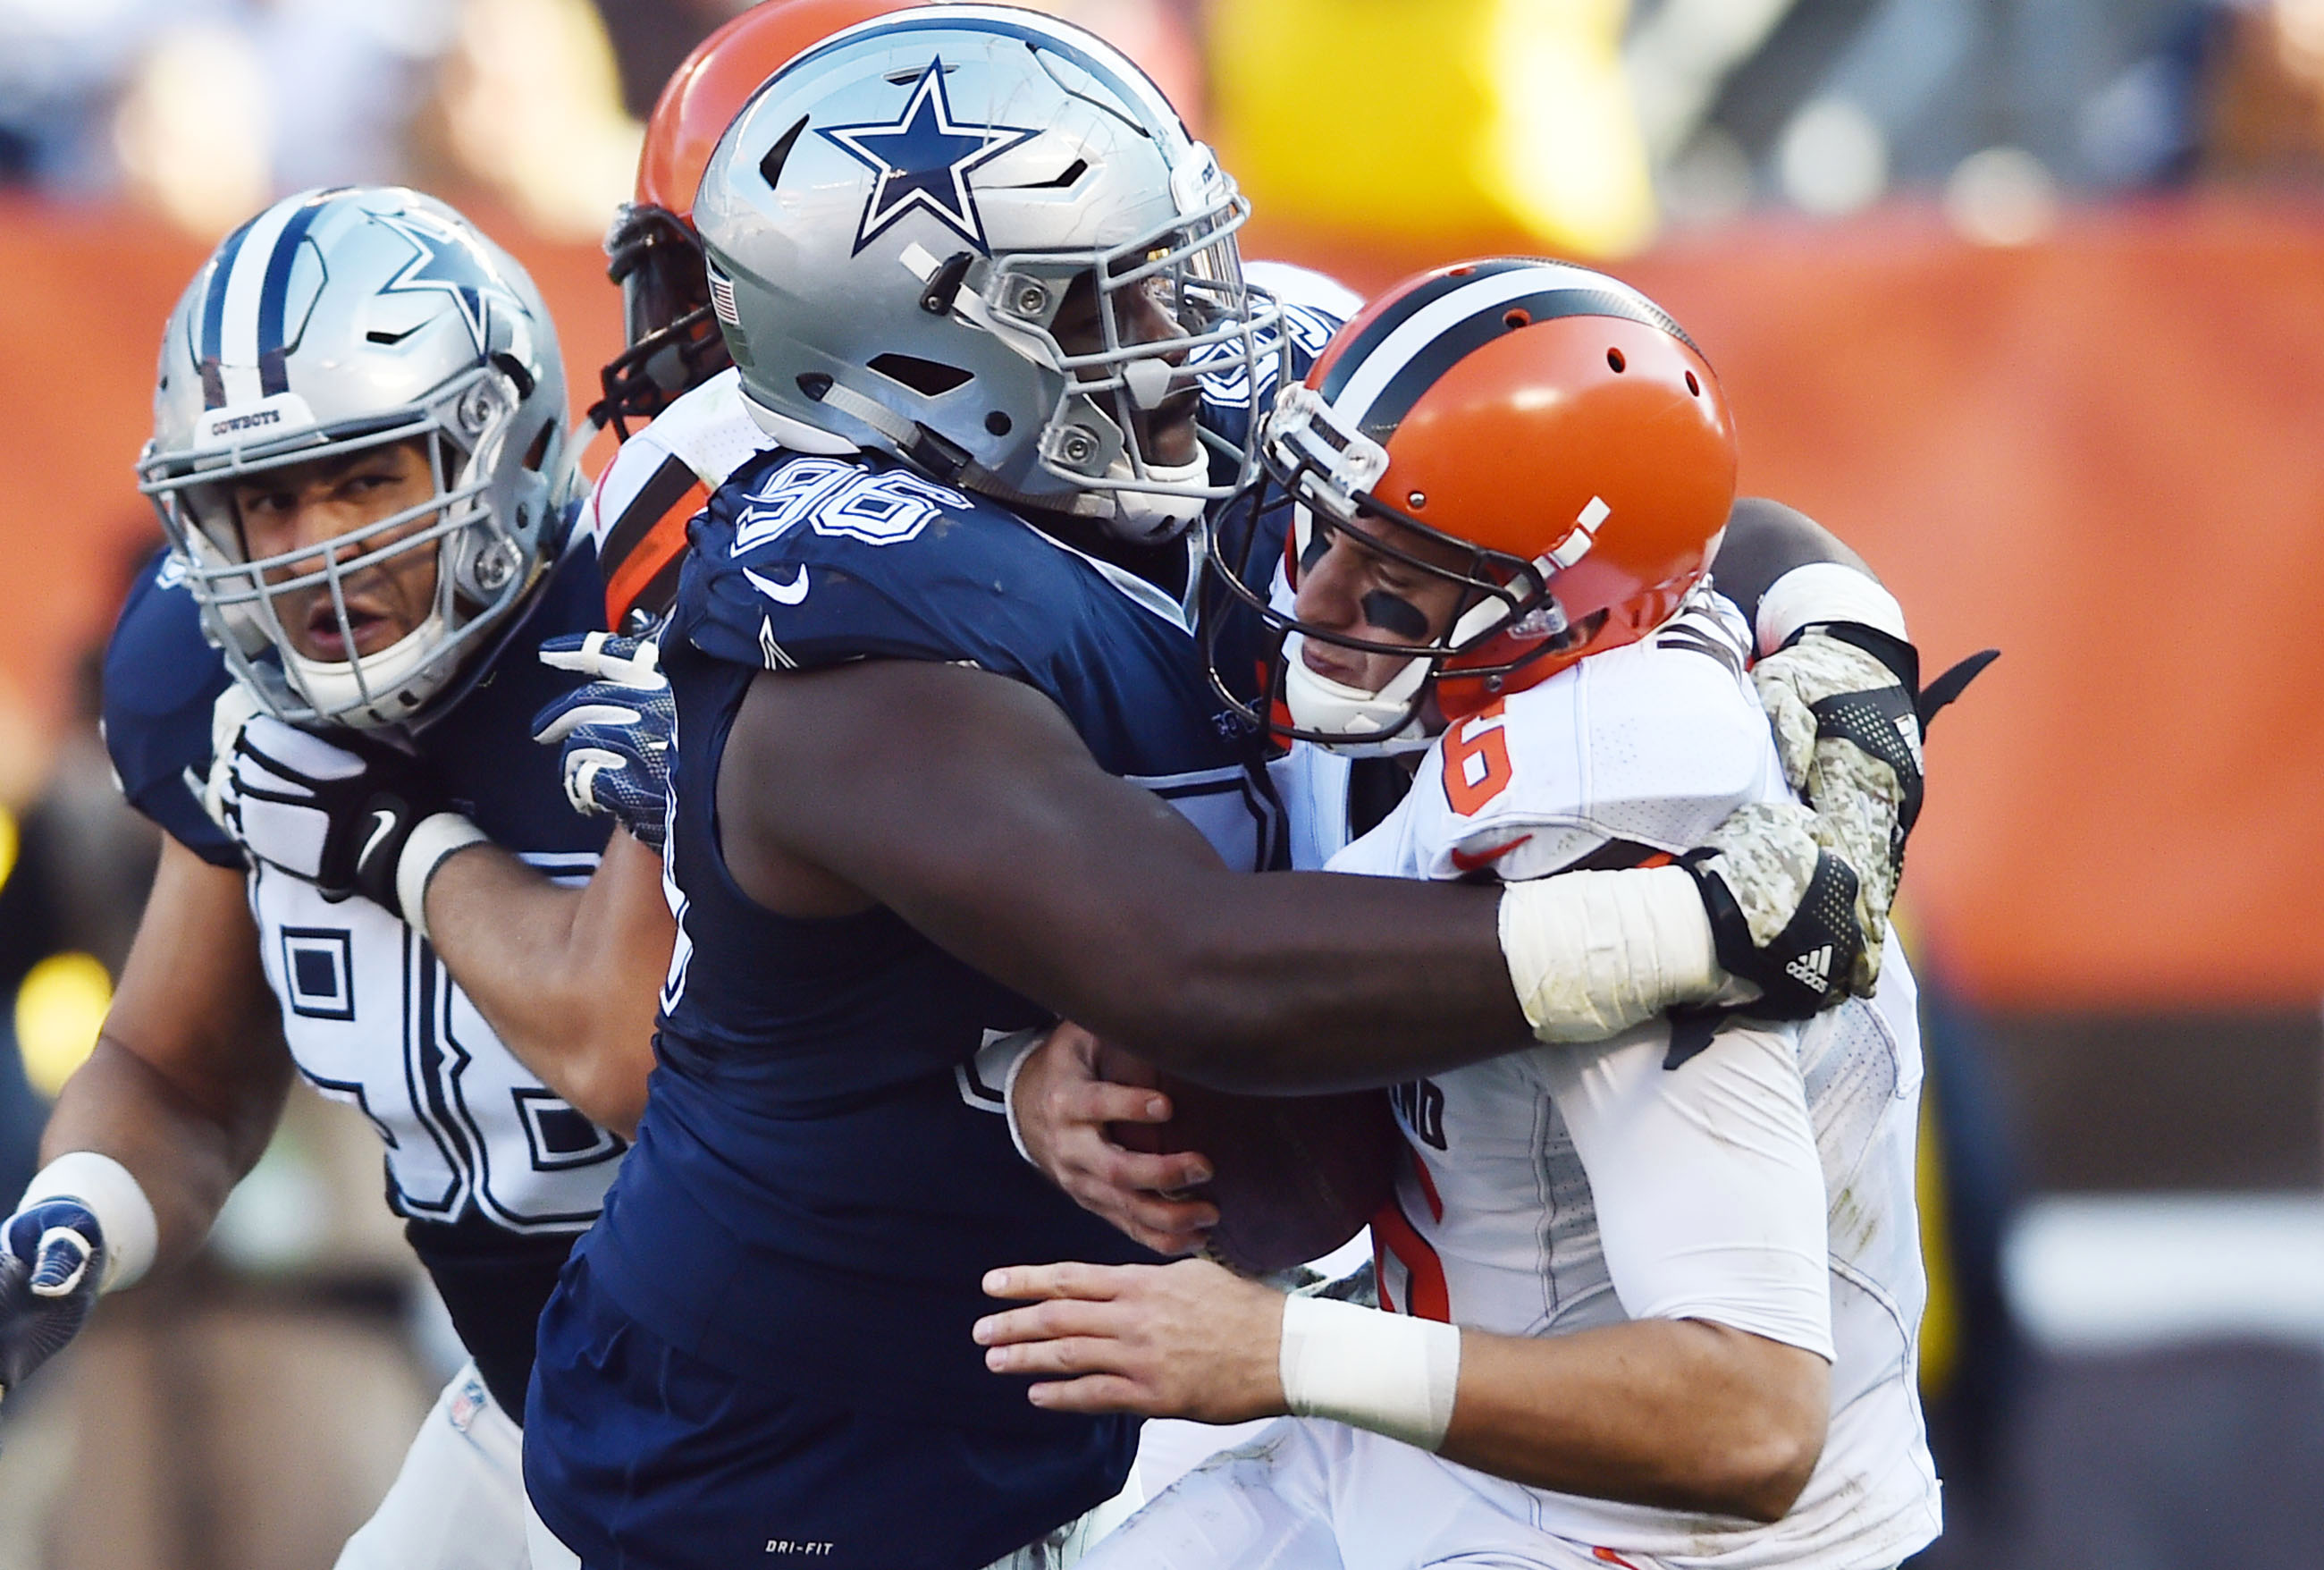 9658835-nfl-dallas-cowboys-at-cleveland-browns